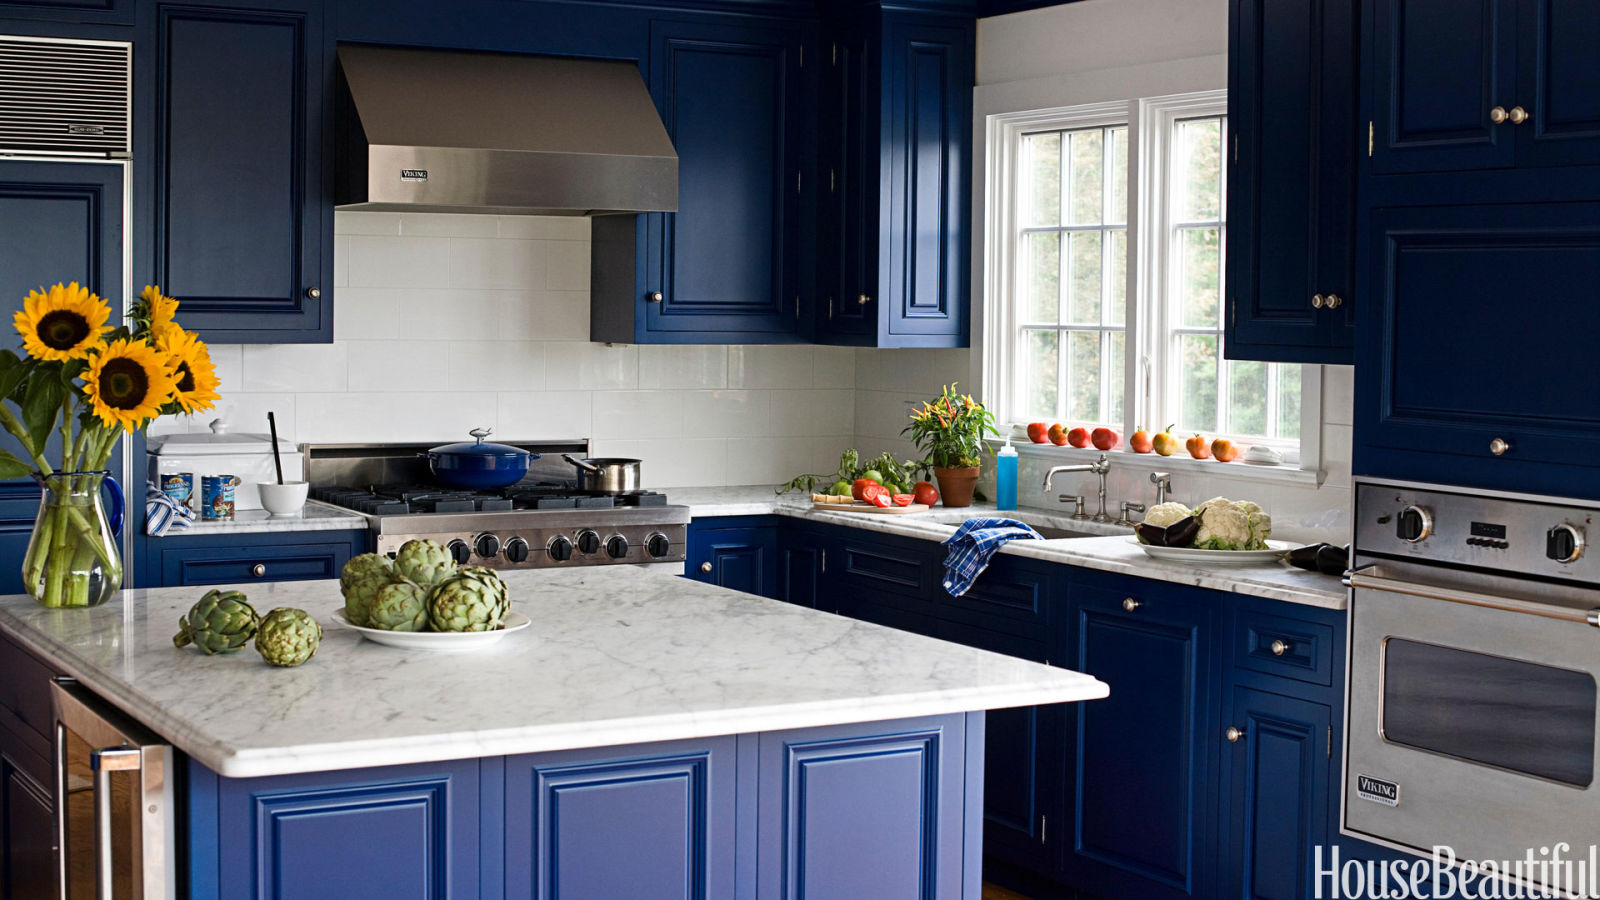 Kitchen Design Hd Wallpapers 20+ best kitchen paint colors - ideas for popular kitchen colors